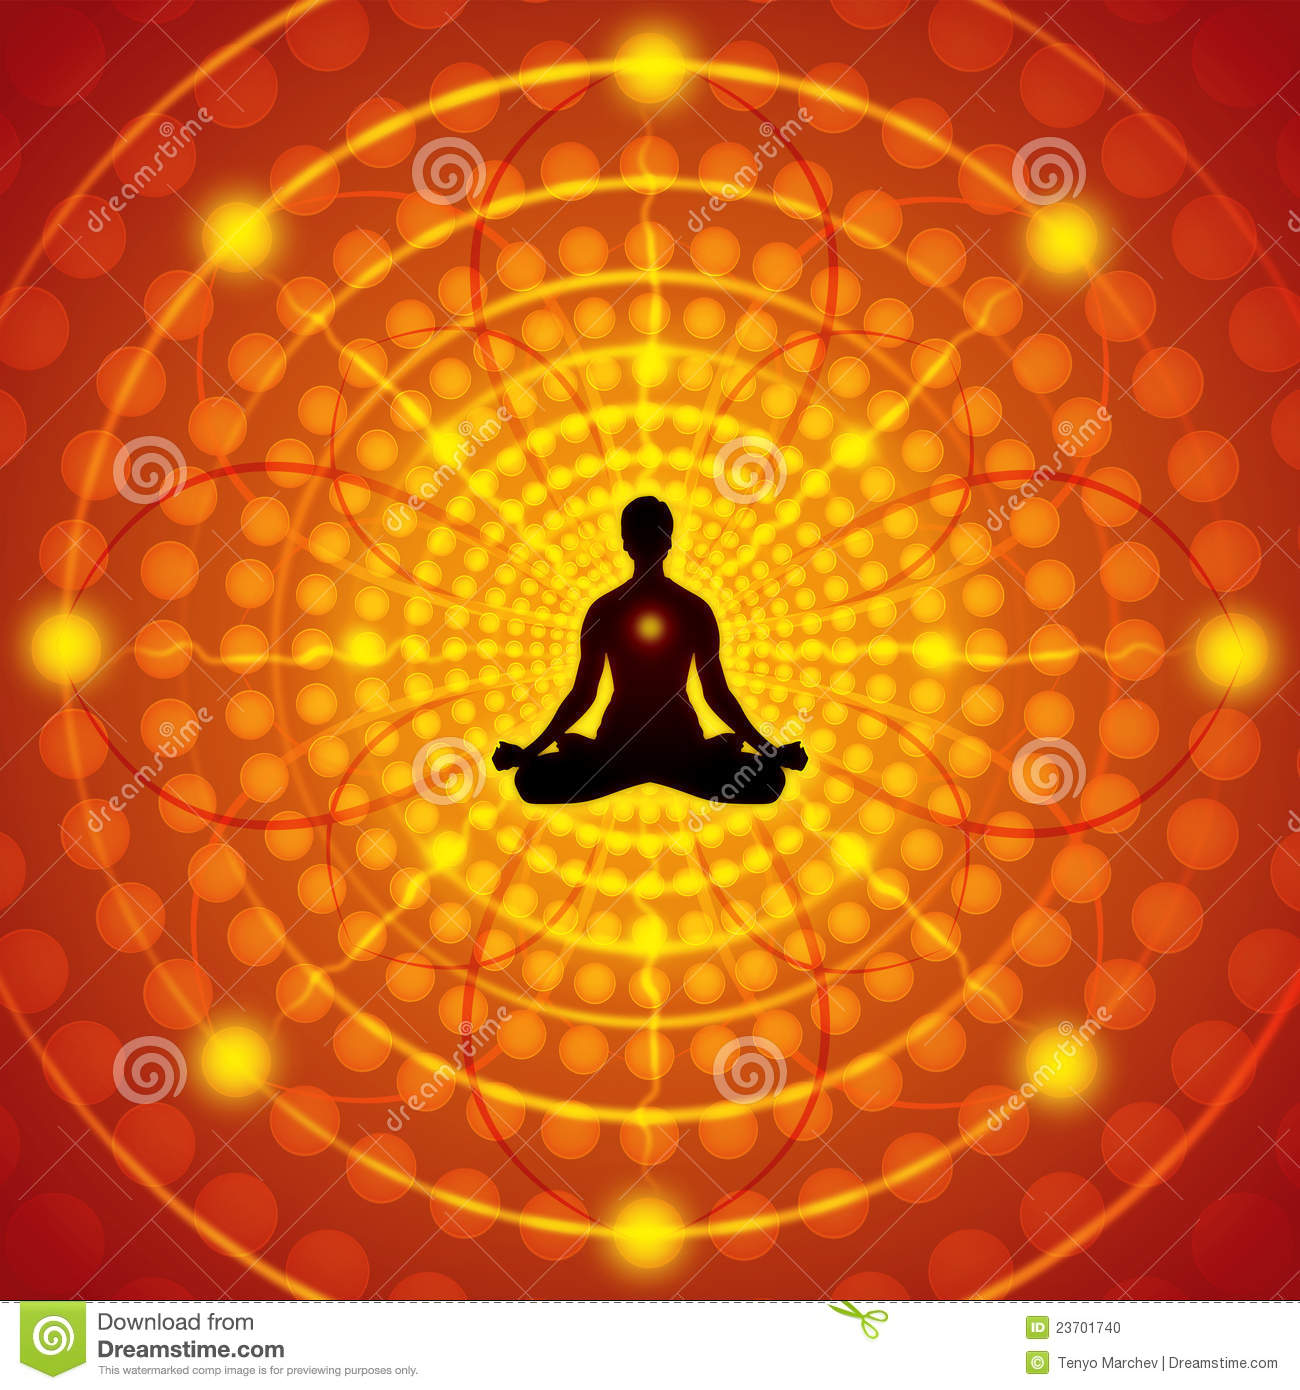 meditation vector illustration illustration 23701740 megapixl